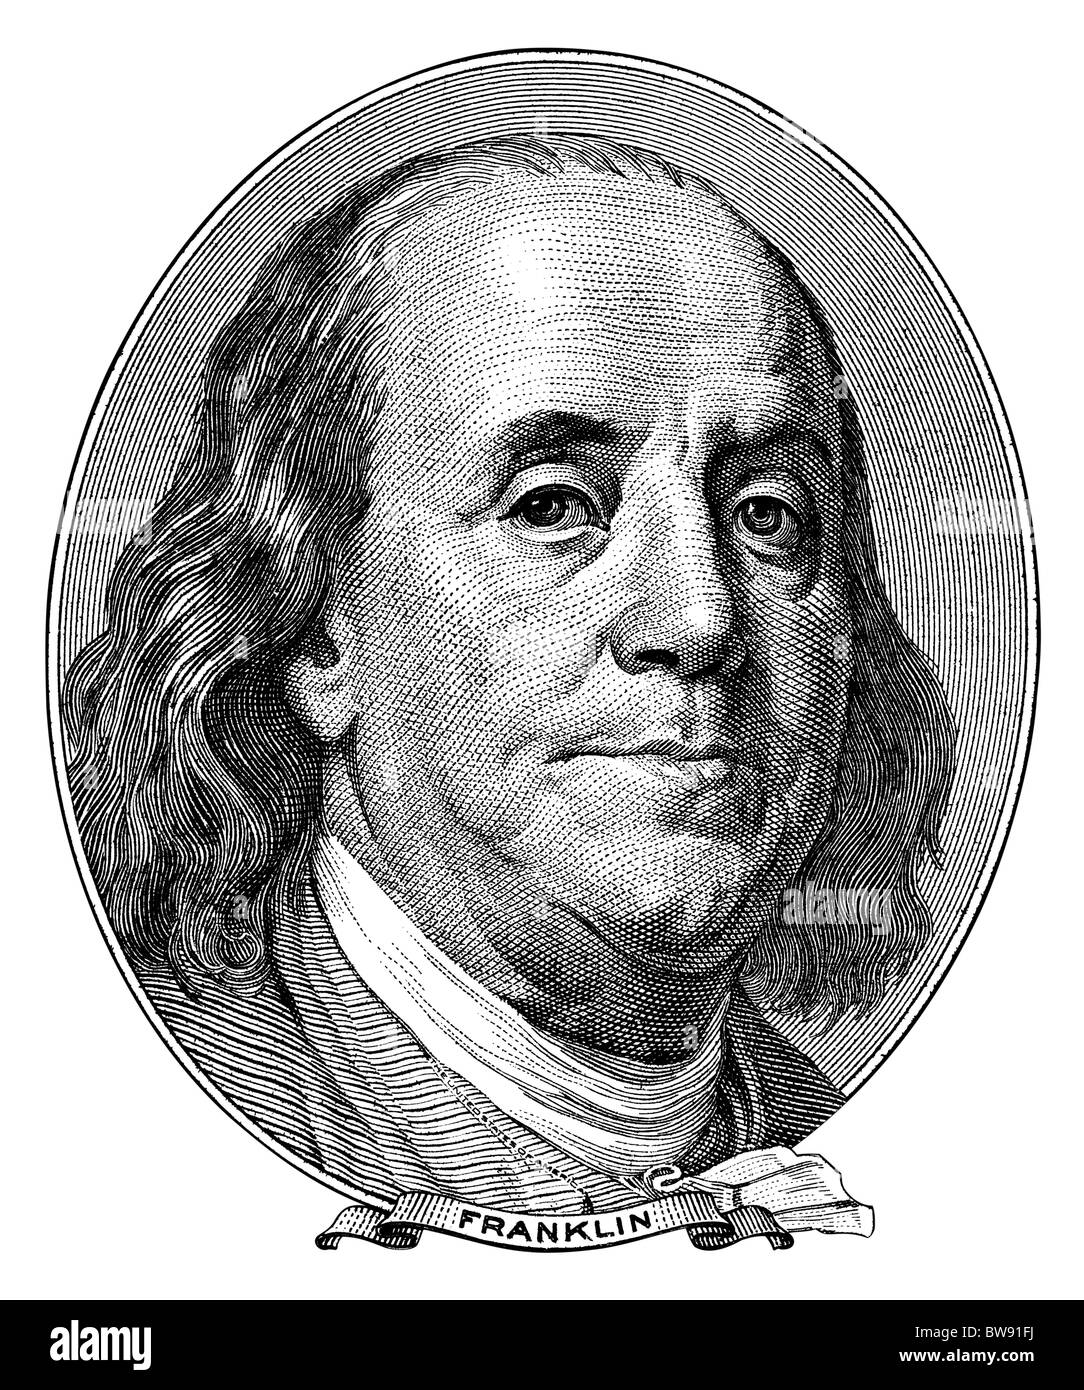 Portrait of Benjamin Franklin from one hundred dollar bill turned into black and white engraving. NATIVE SIZE NOT - Stock Image